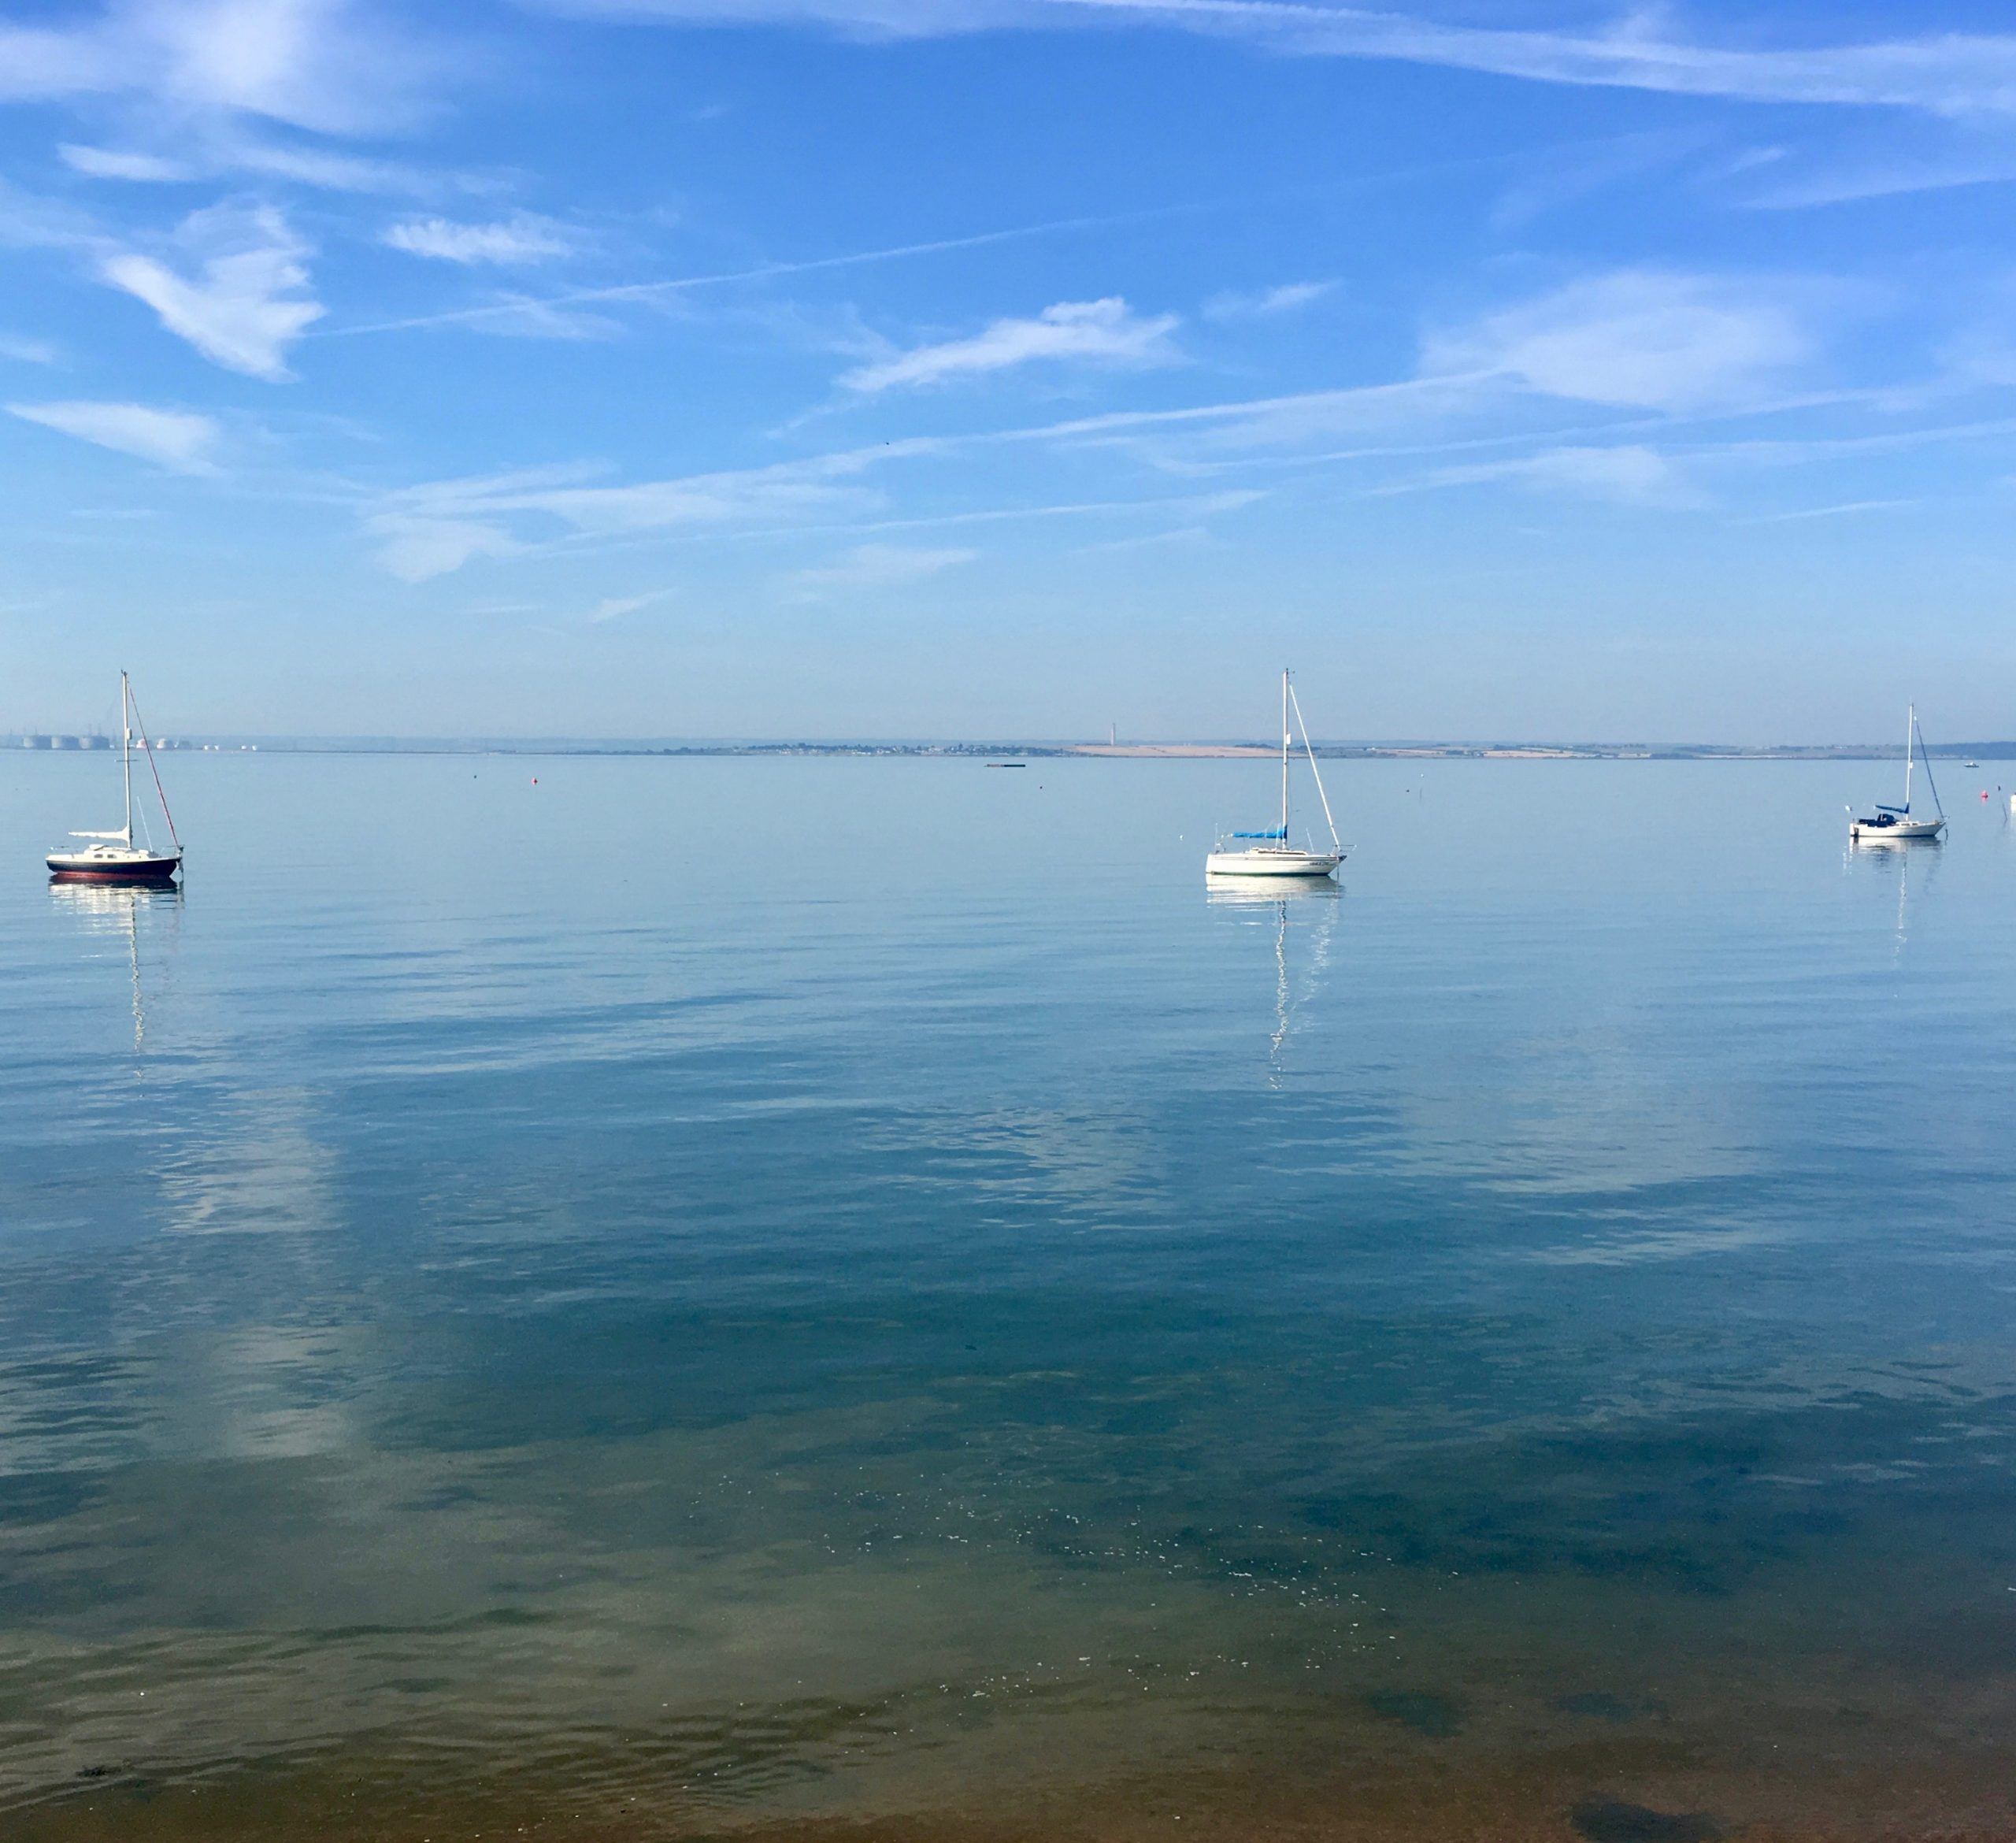 A blue sky, with three boats upon a peaceful and still sea scape